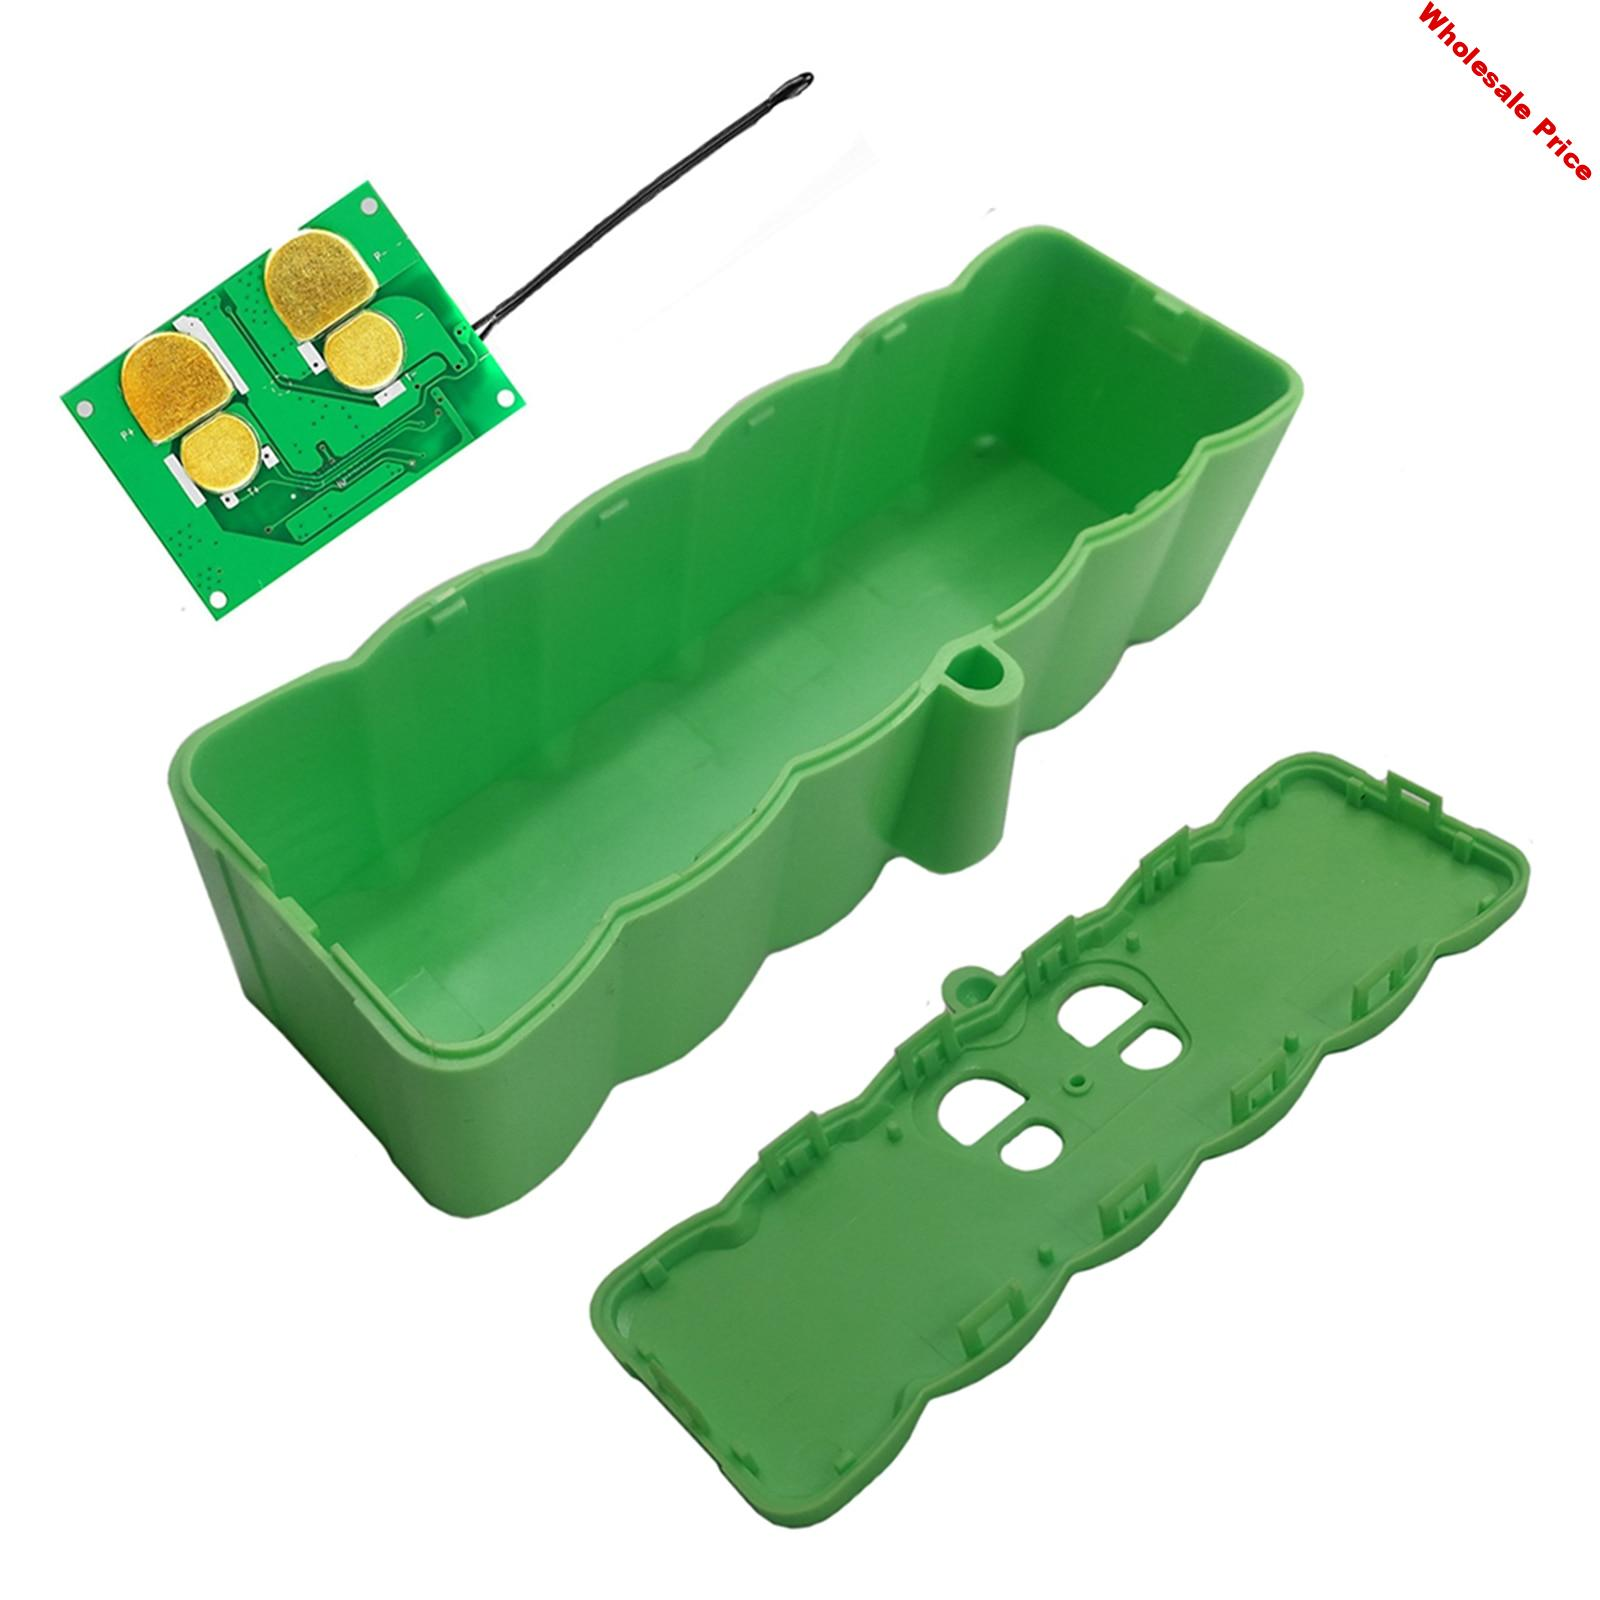 Plastic Lithium Battery Housing Shell Case for iRobot Roomba Robot Vacuum Cleaner 500 600 800 Series PCB Charging Circuit Board